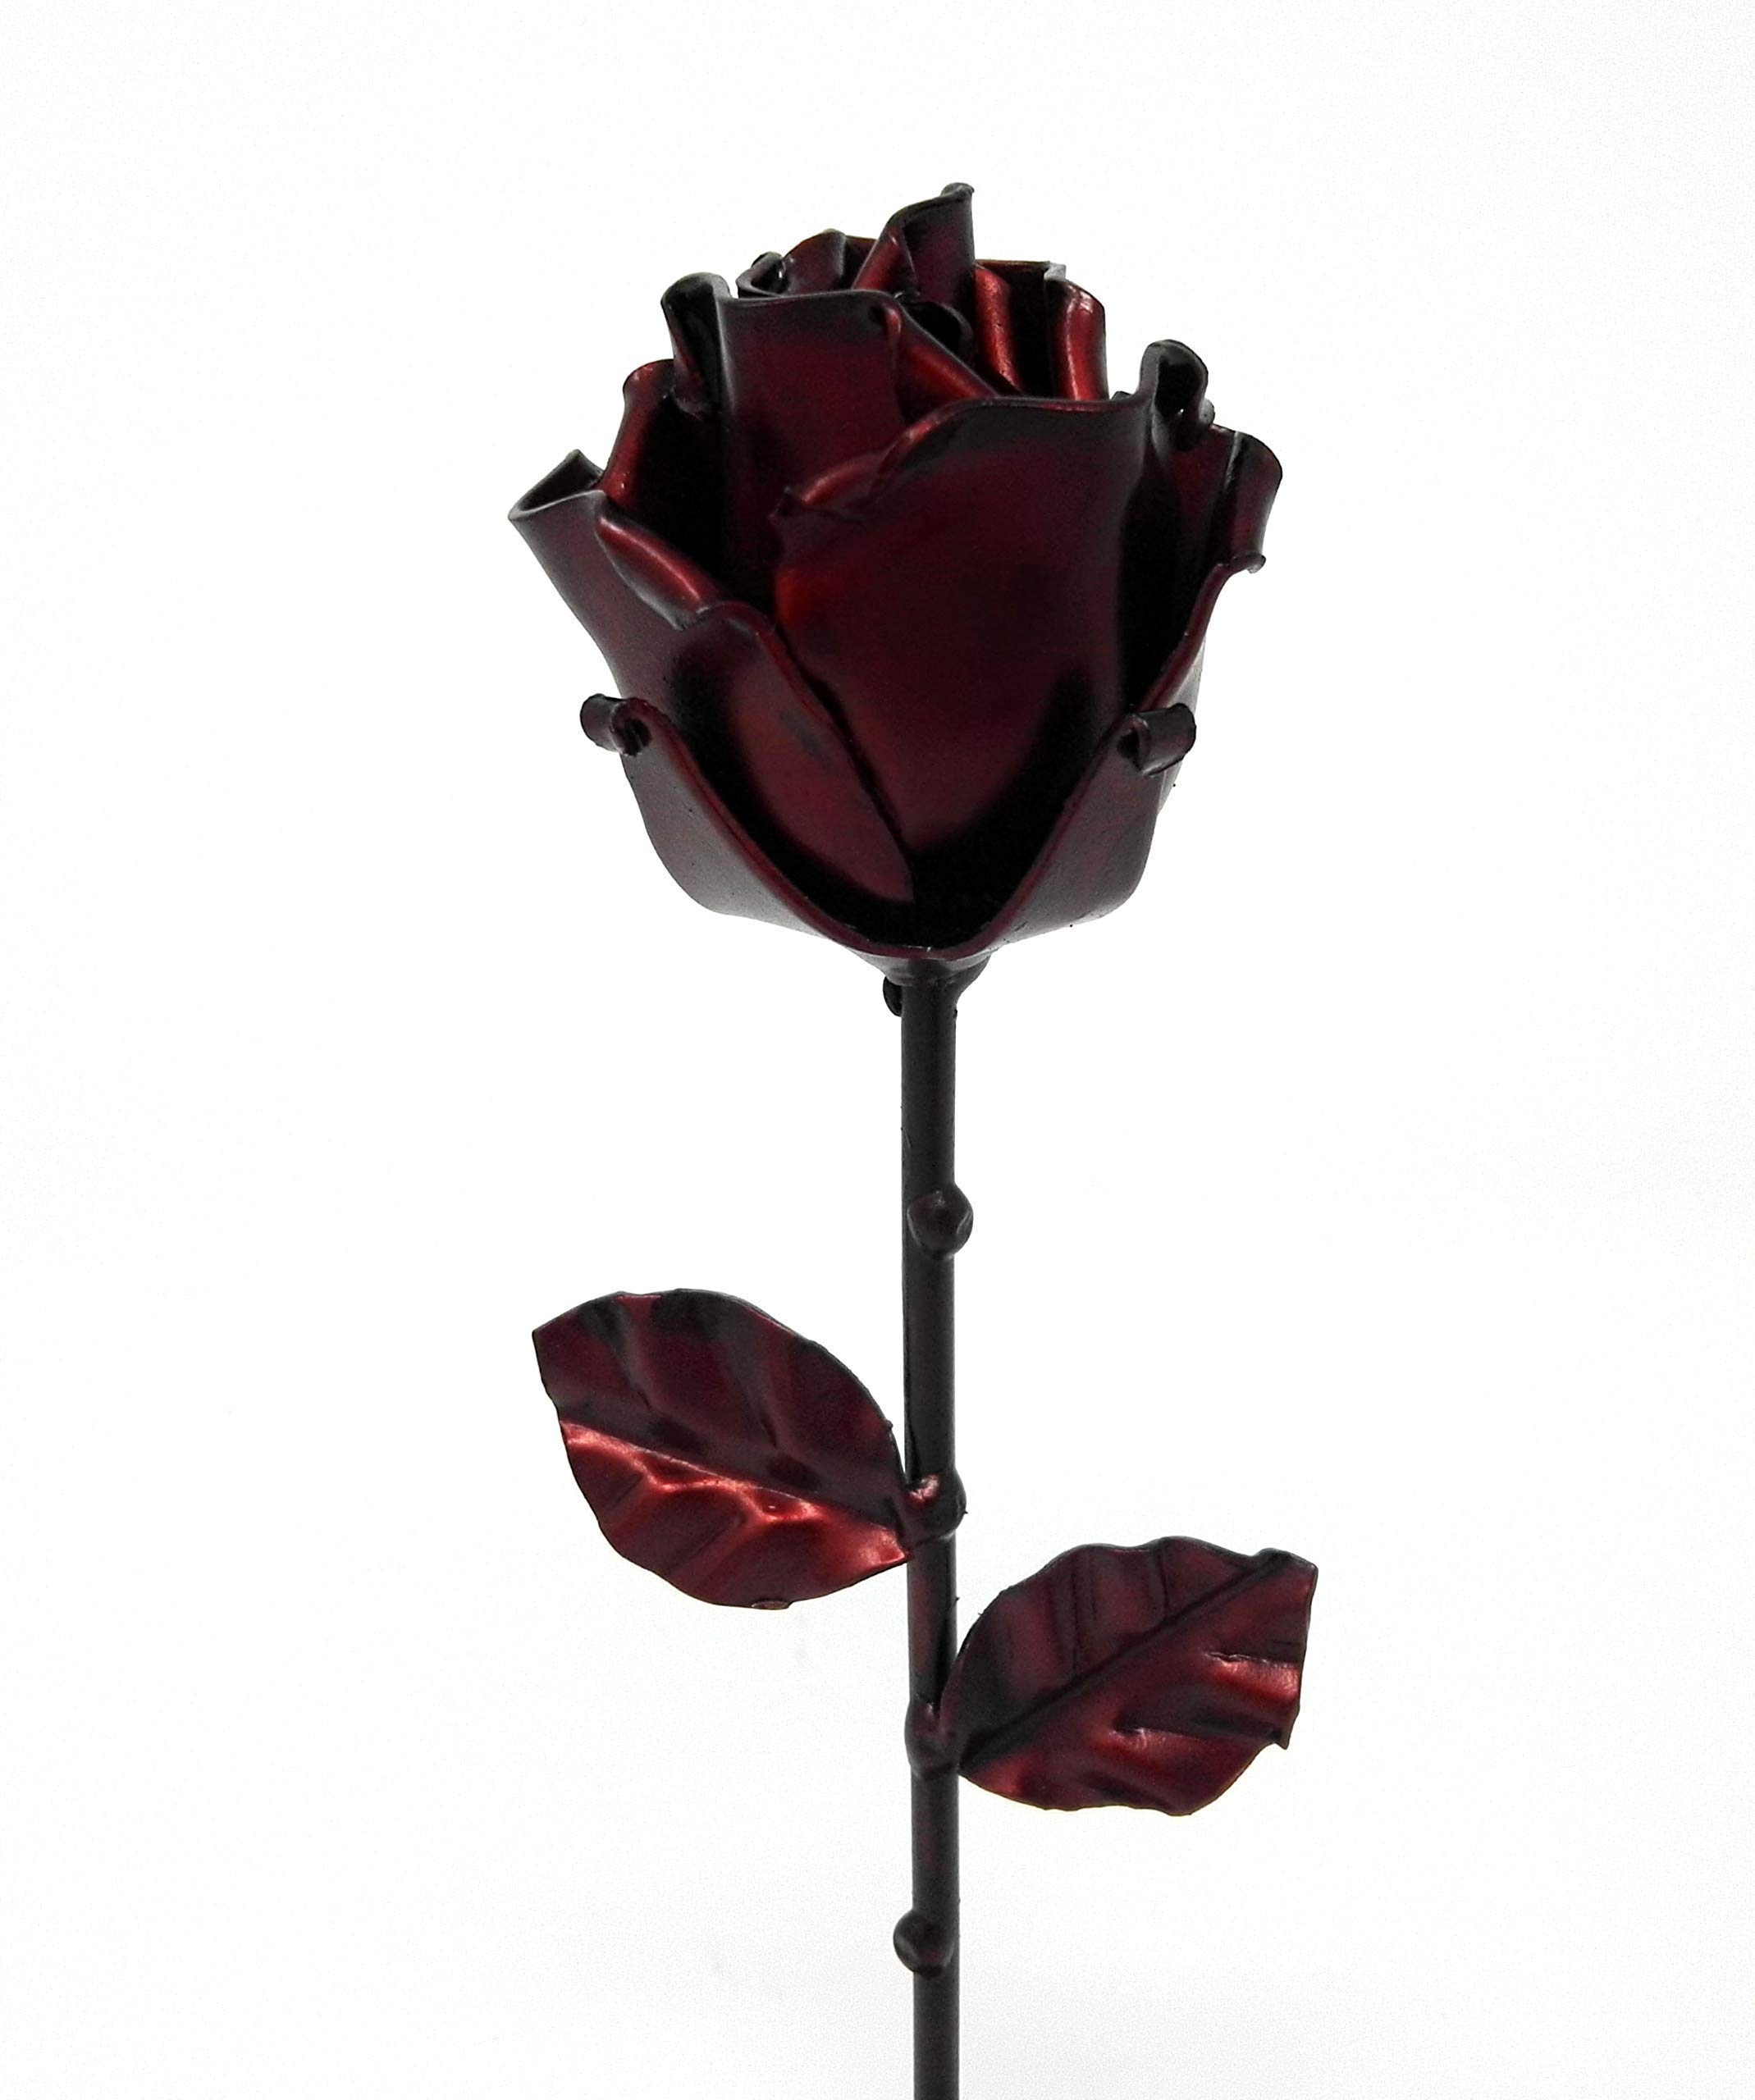 -Eternal-Rose-Hand-Forged-Wrought-Iron-Red-with-BaseIdeal-gift-Valentines-Day-Girlfriend-Mothers-Day-Couple-Marriage-Birthday-Christmas-Wedding-Day-Anniversary